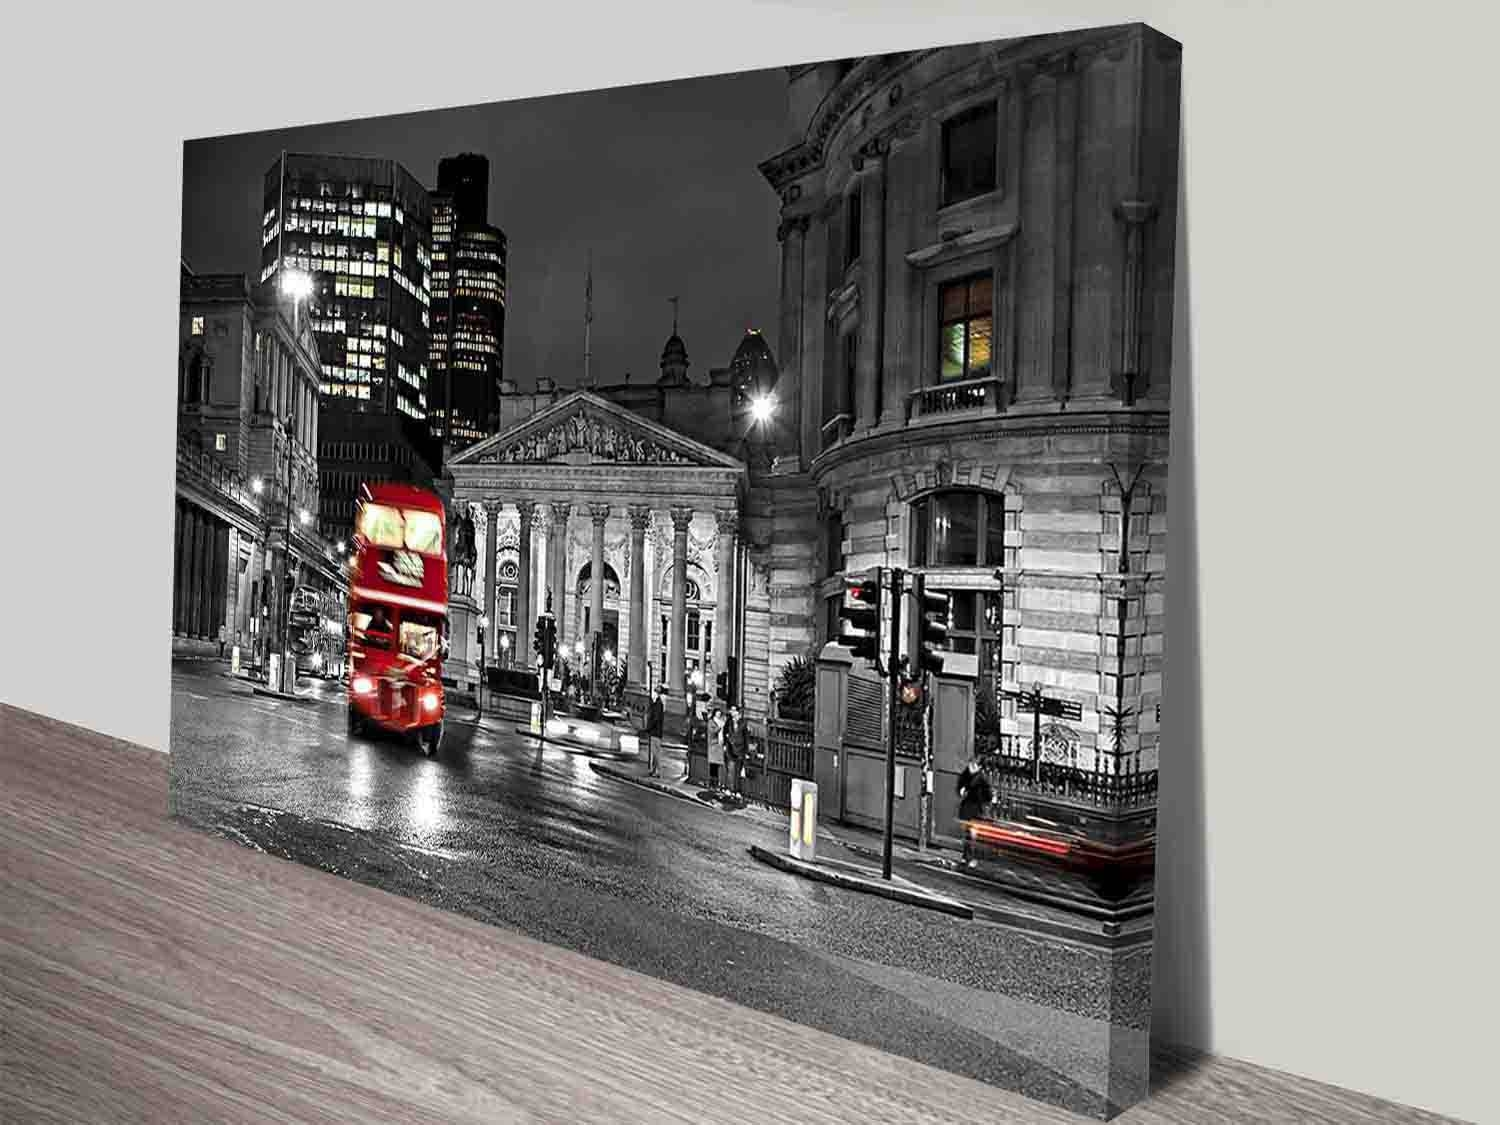 Red Double Decker Bus Black And White City Scene Wall Art Intended For Current London Scene Wall Art (Gallery 8 of 20)